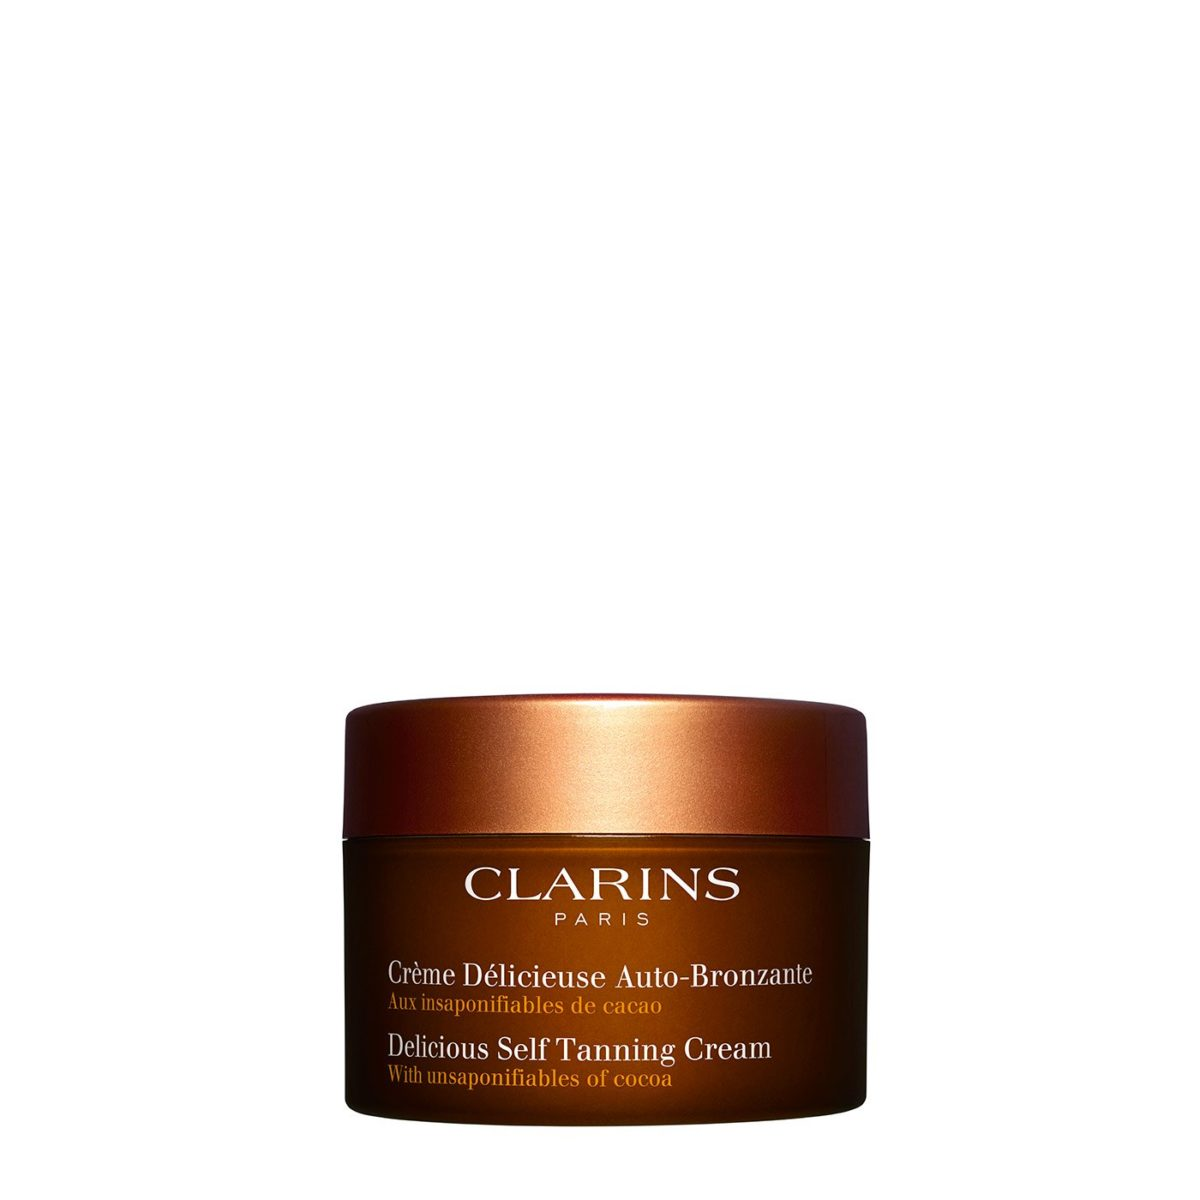 ClarinsDelicious self tanning cream 150 ml